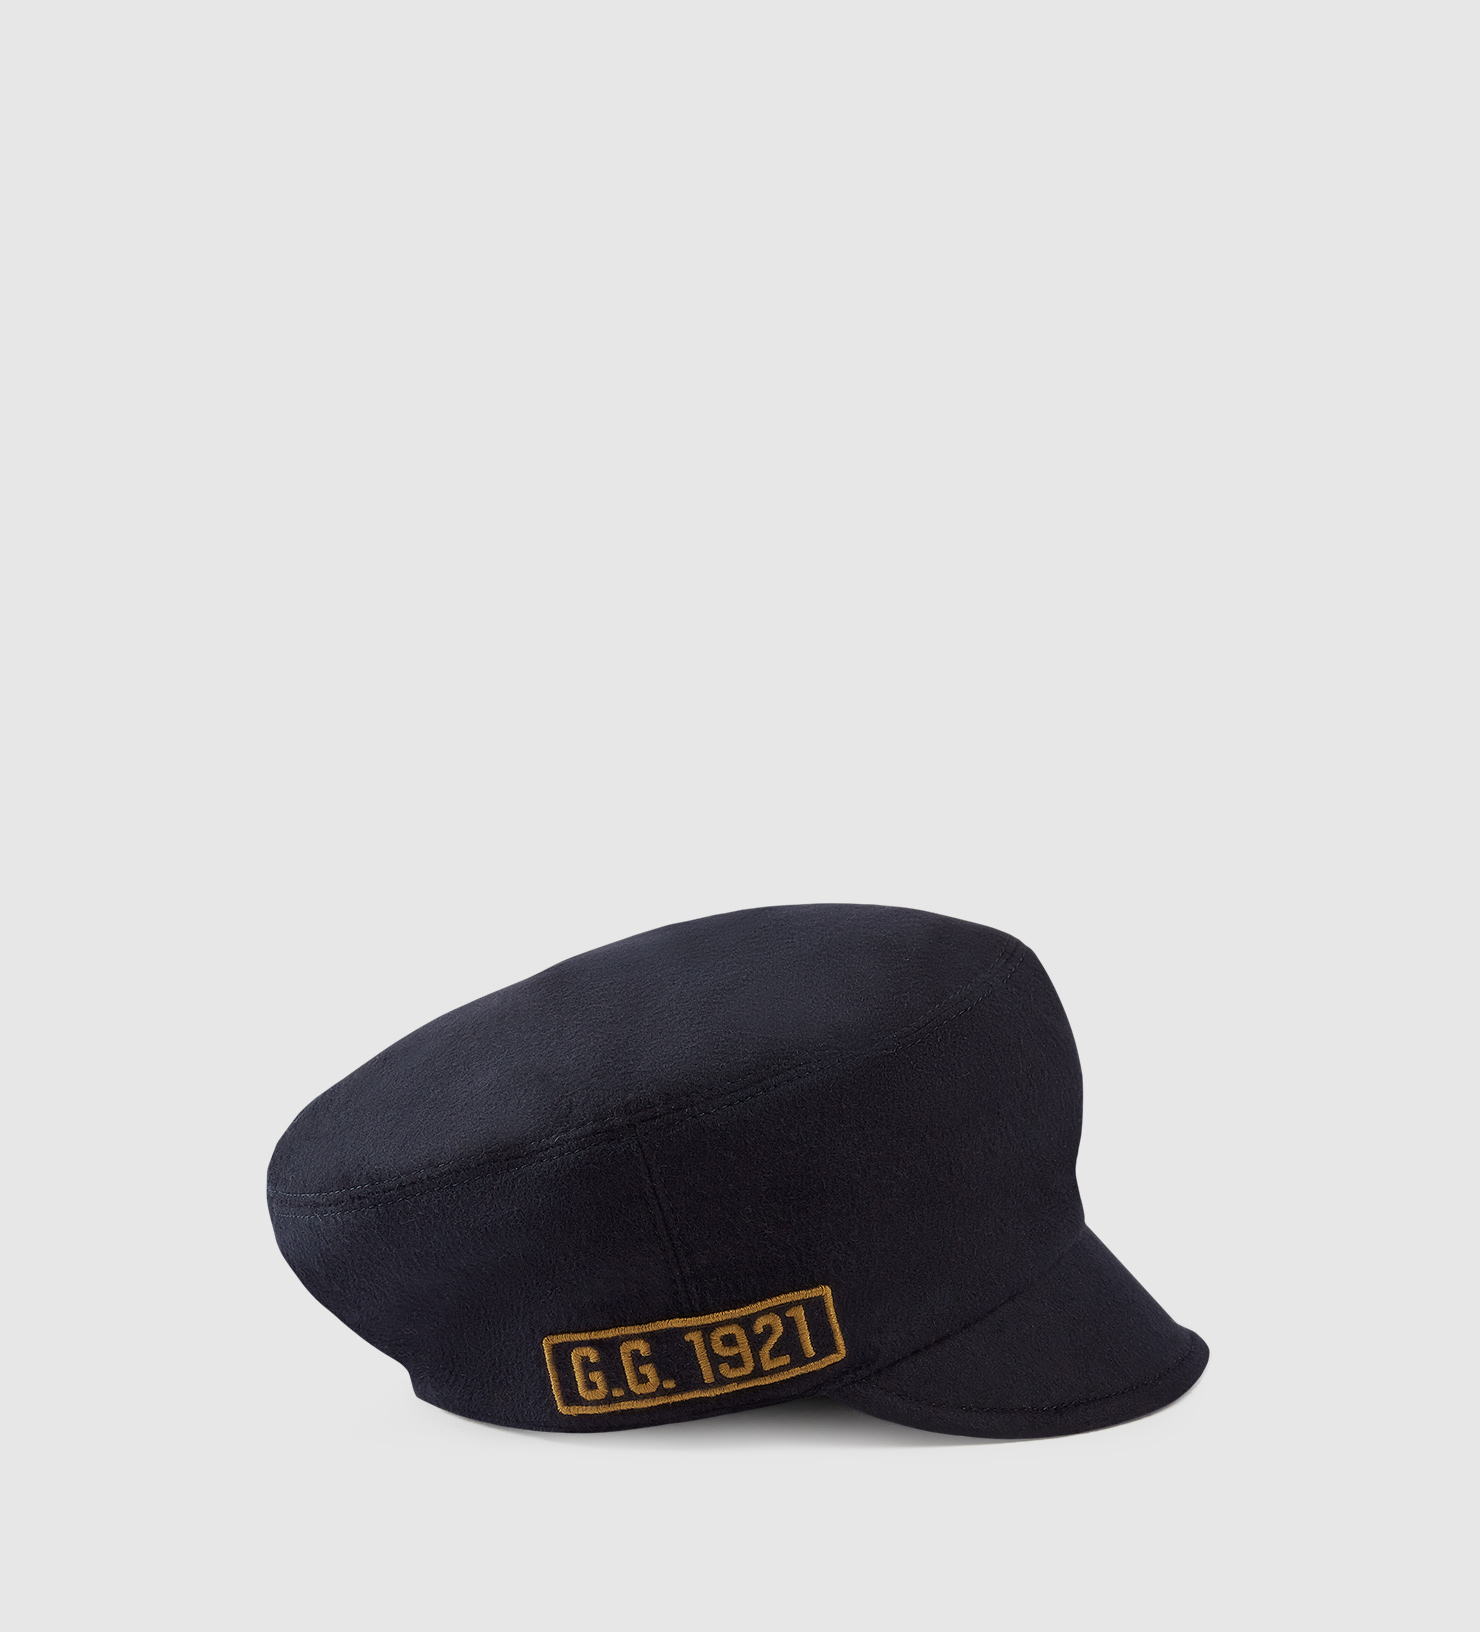 Lyst - Gucci Wool Cap With Military Patches in Blue for Men 11b58615626